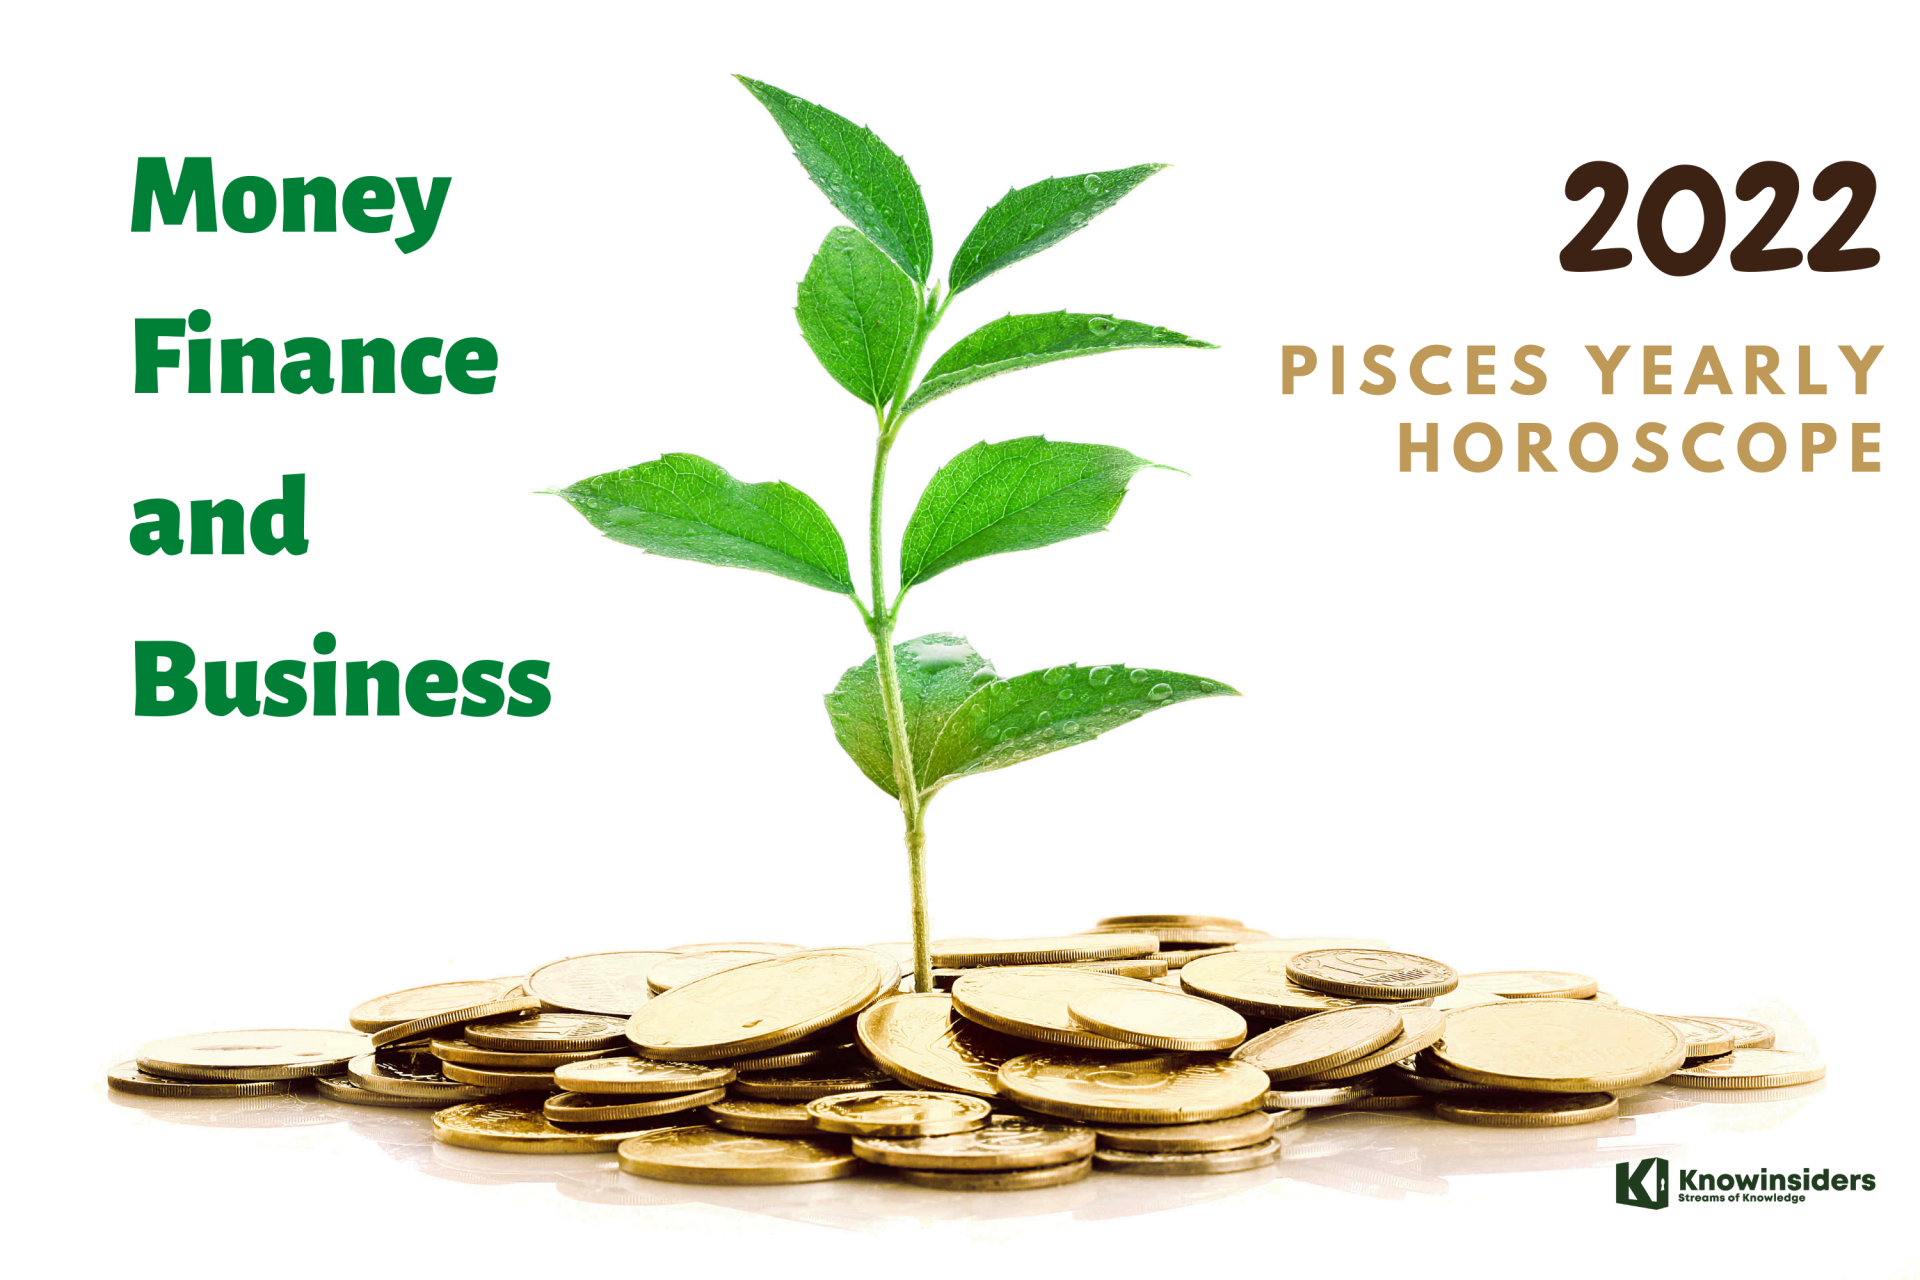 PISCES Yearly Horoscope 2022: Predictions for Money, Finance and Business